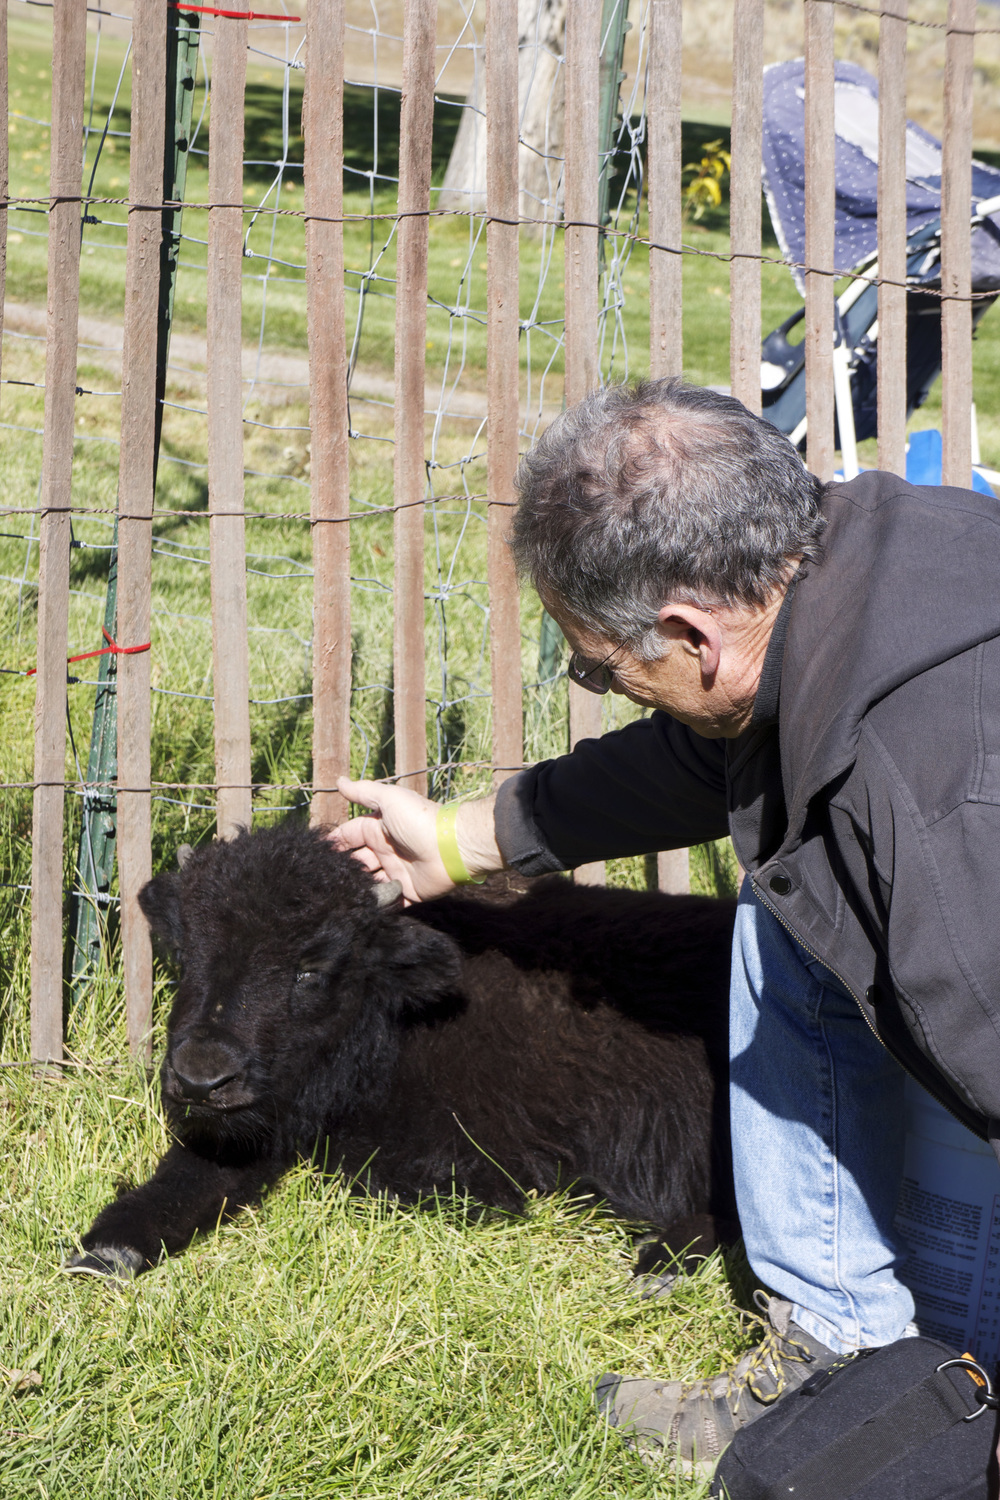 petting a baby yak at  yaktoberfest  yesterday